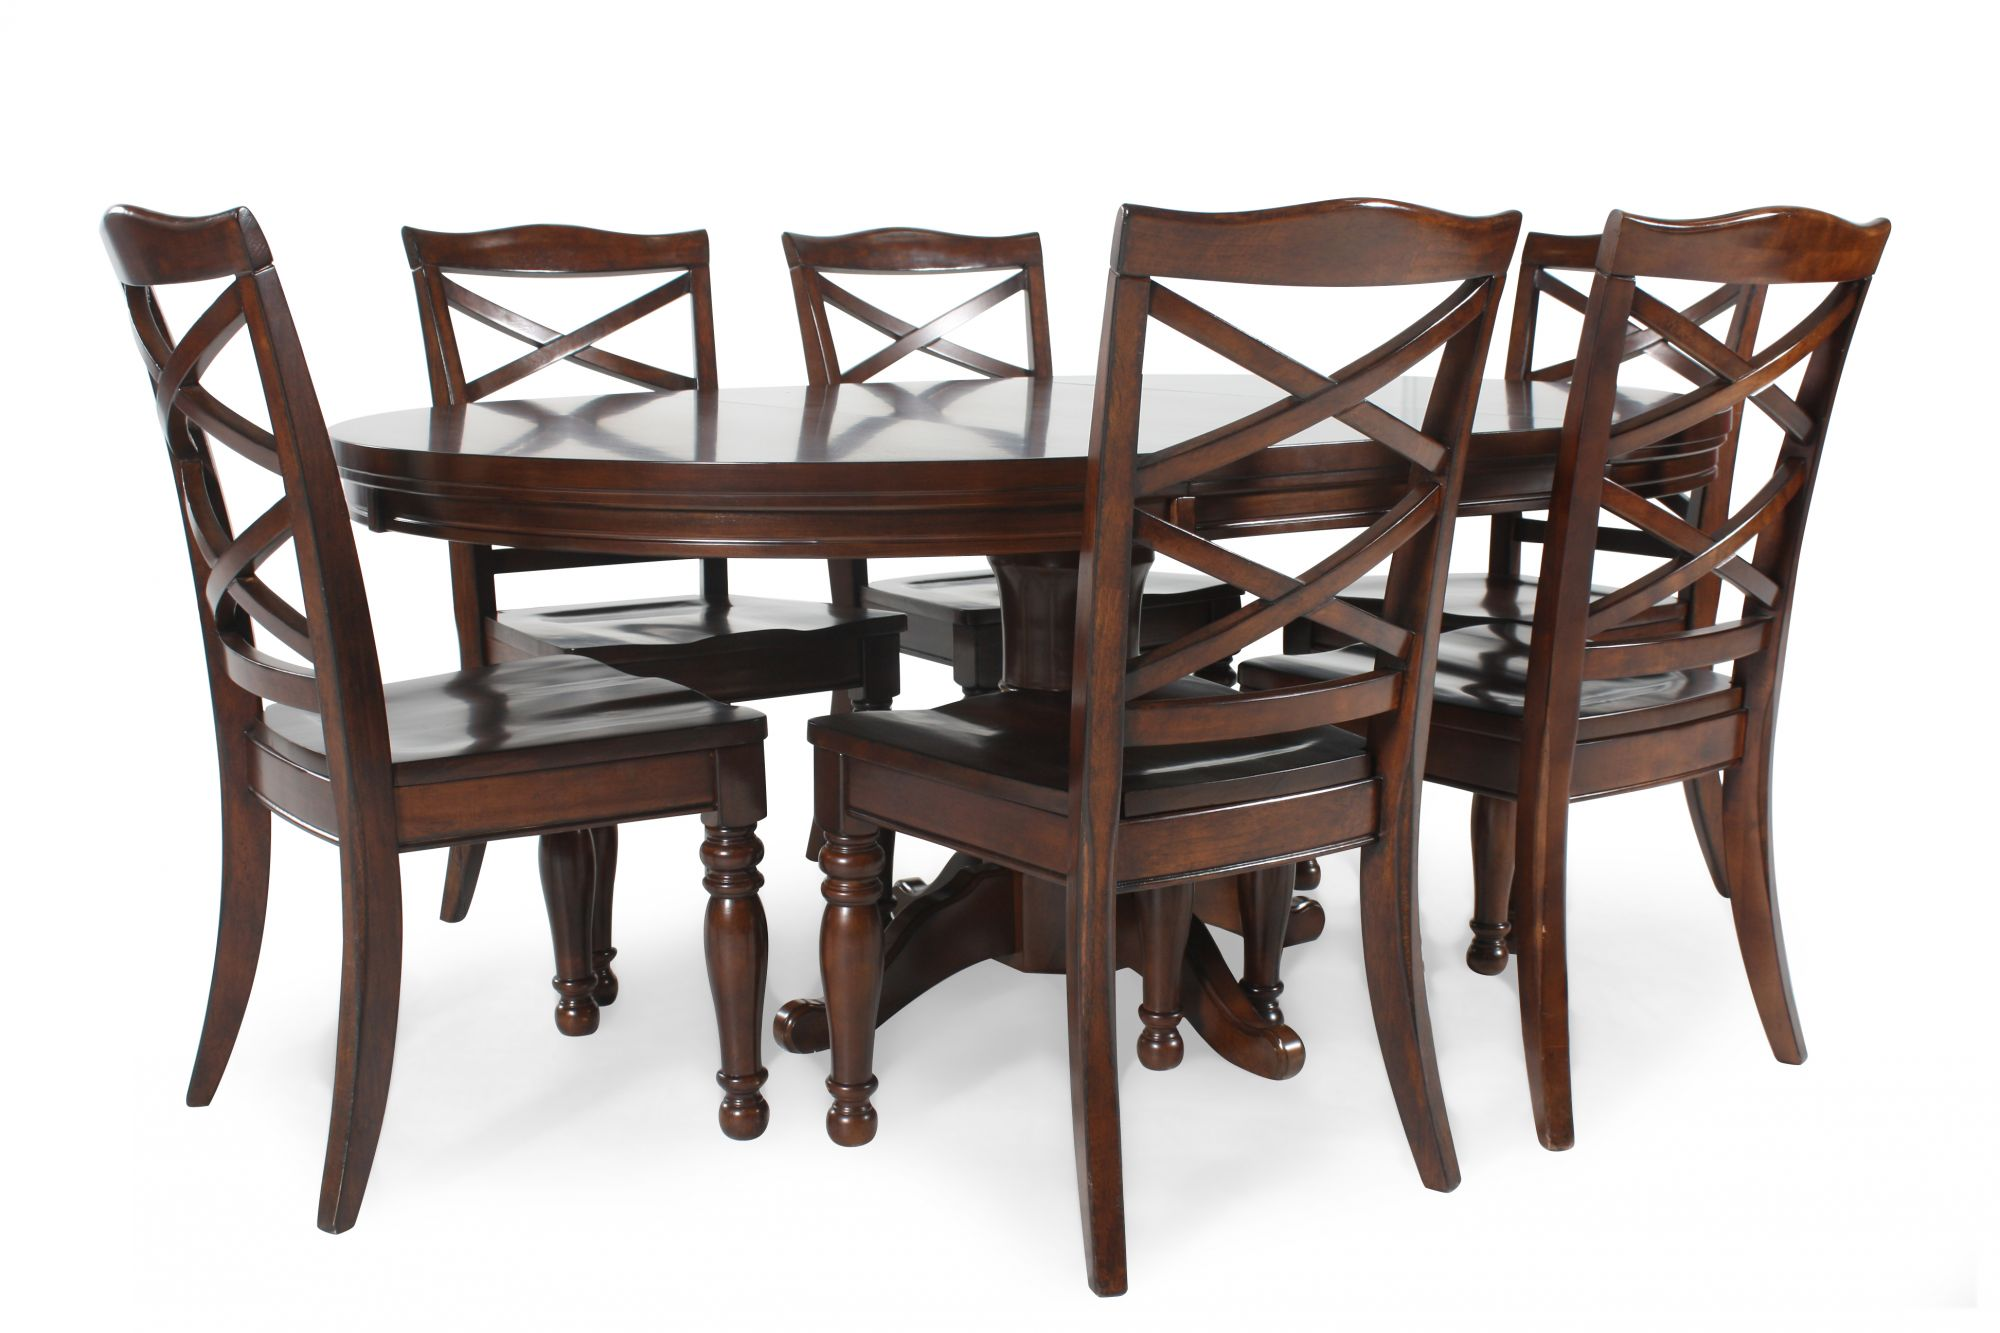 Ashley Porter Five Piece Round Dining Set Mathis  : ASH D697047ROUND 1 from www.mathisbrothers.com size 2000 x 1333 jpeg 208kB